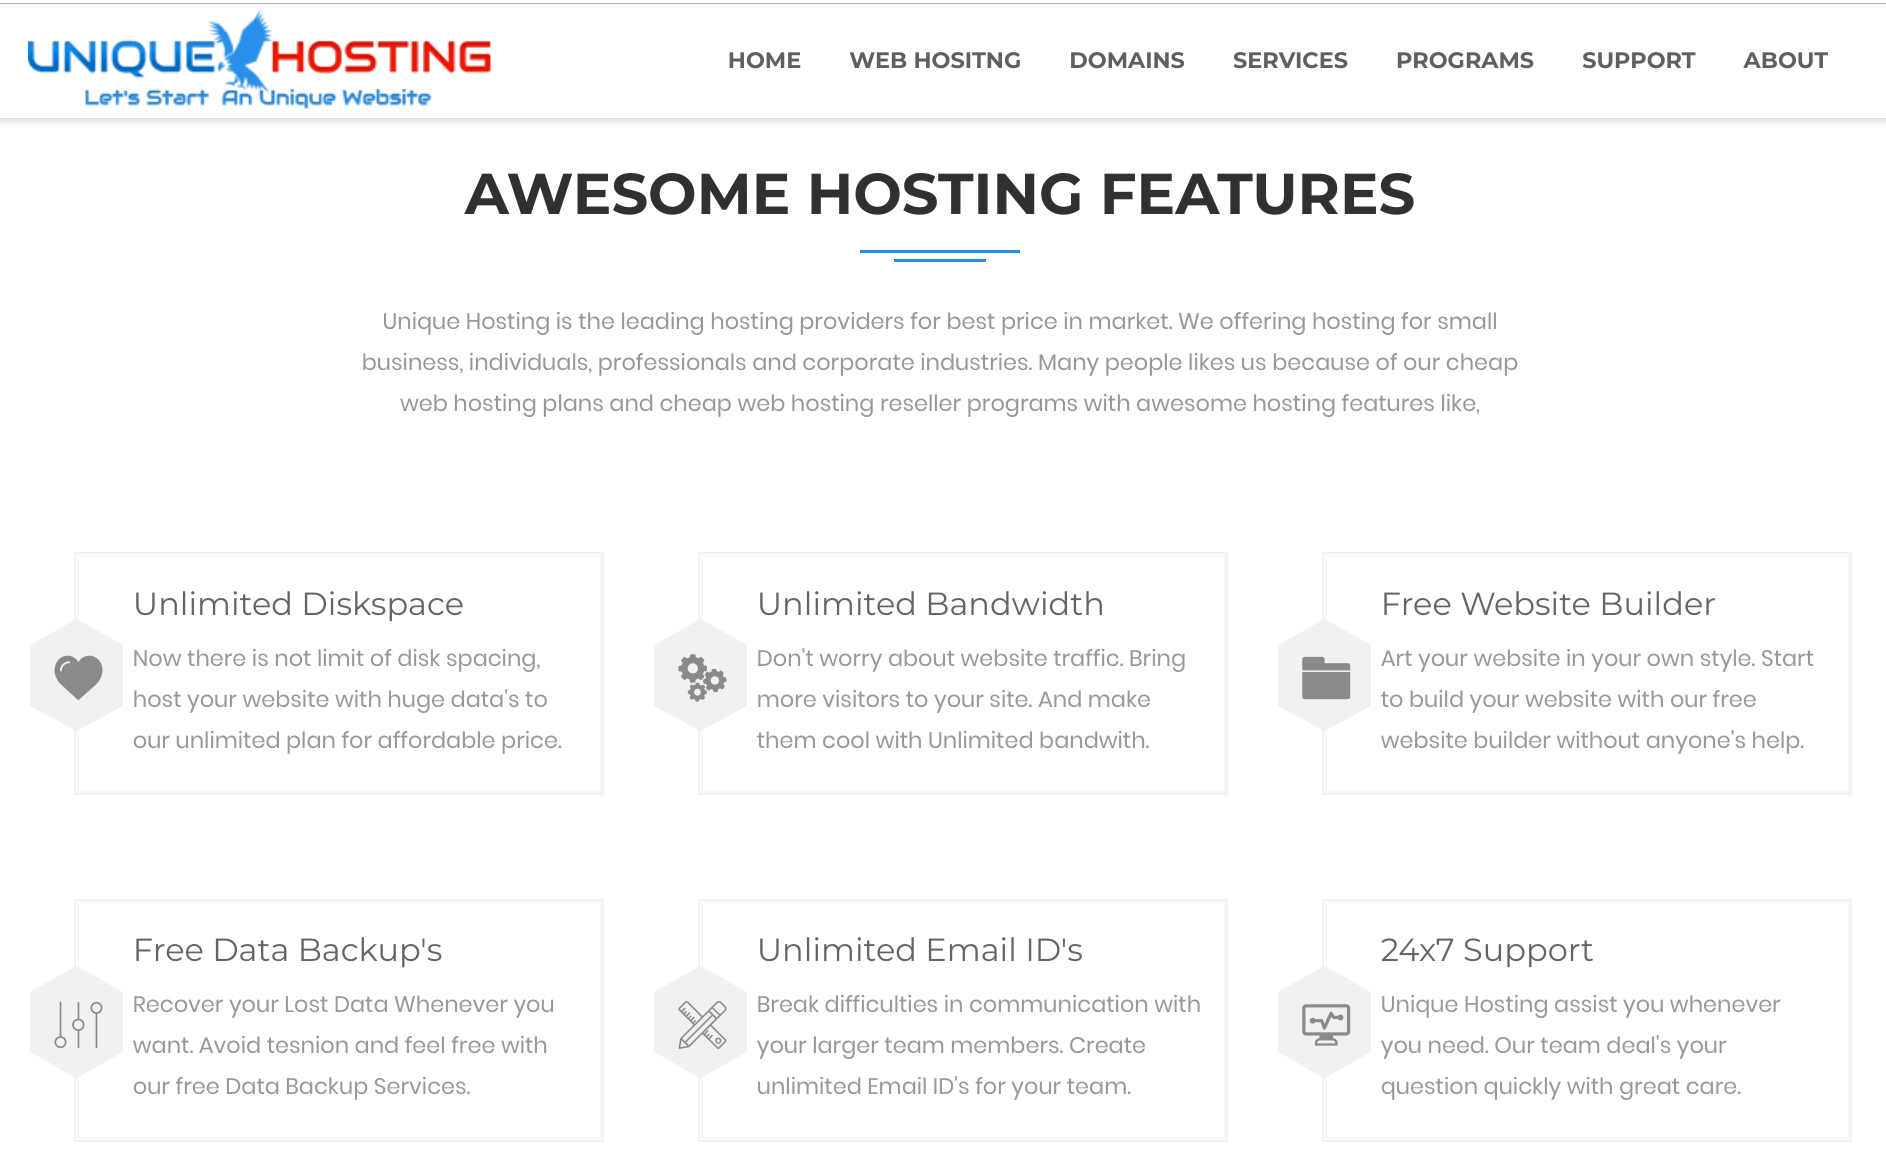 Unique Hosting